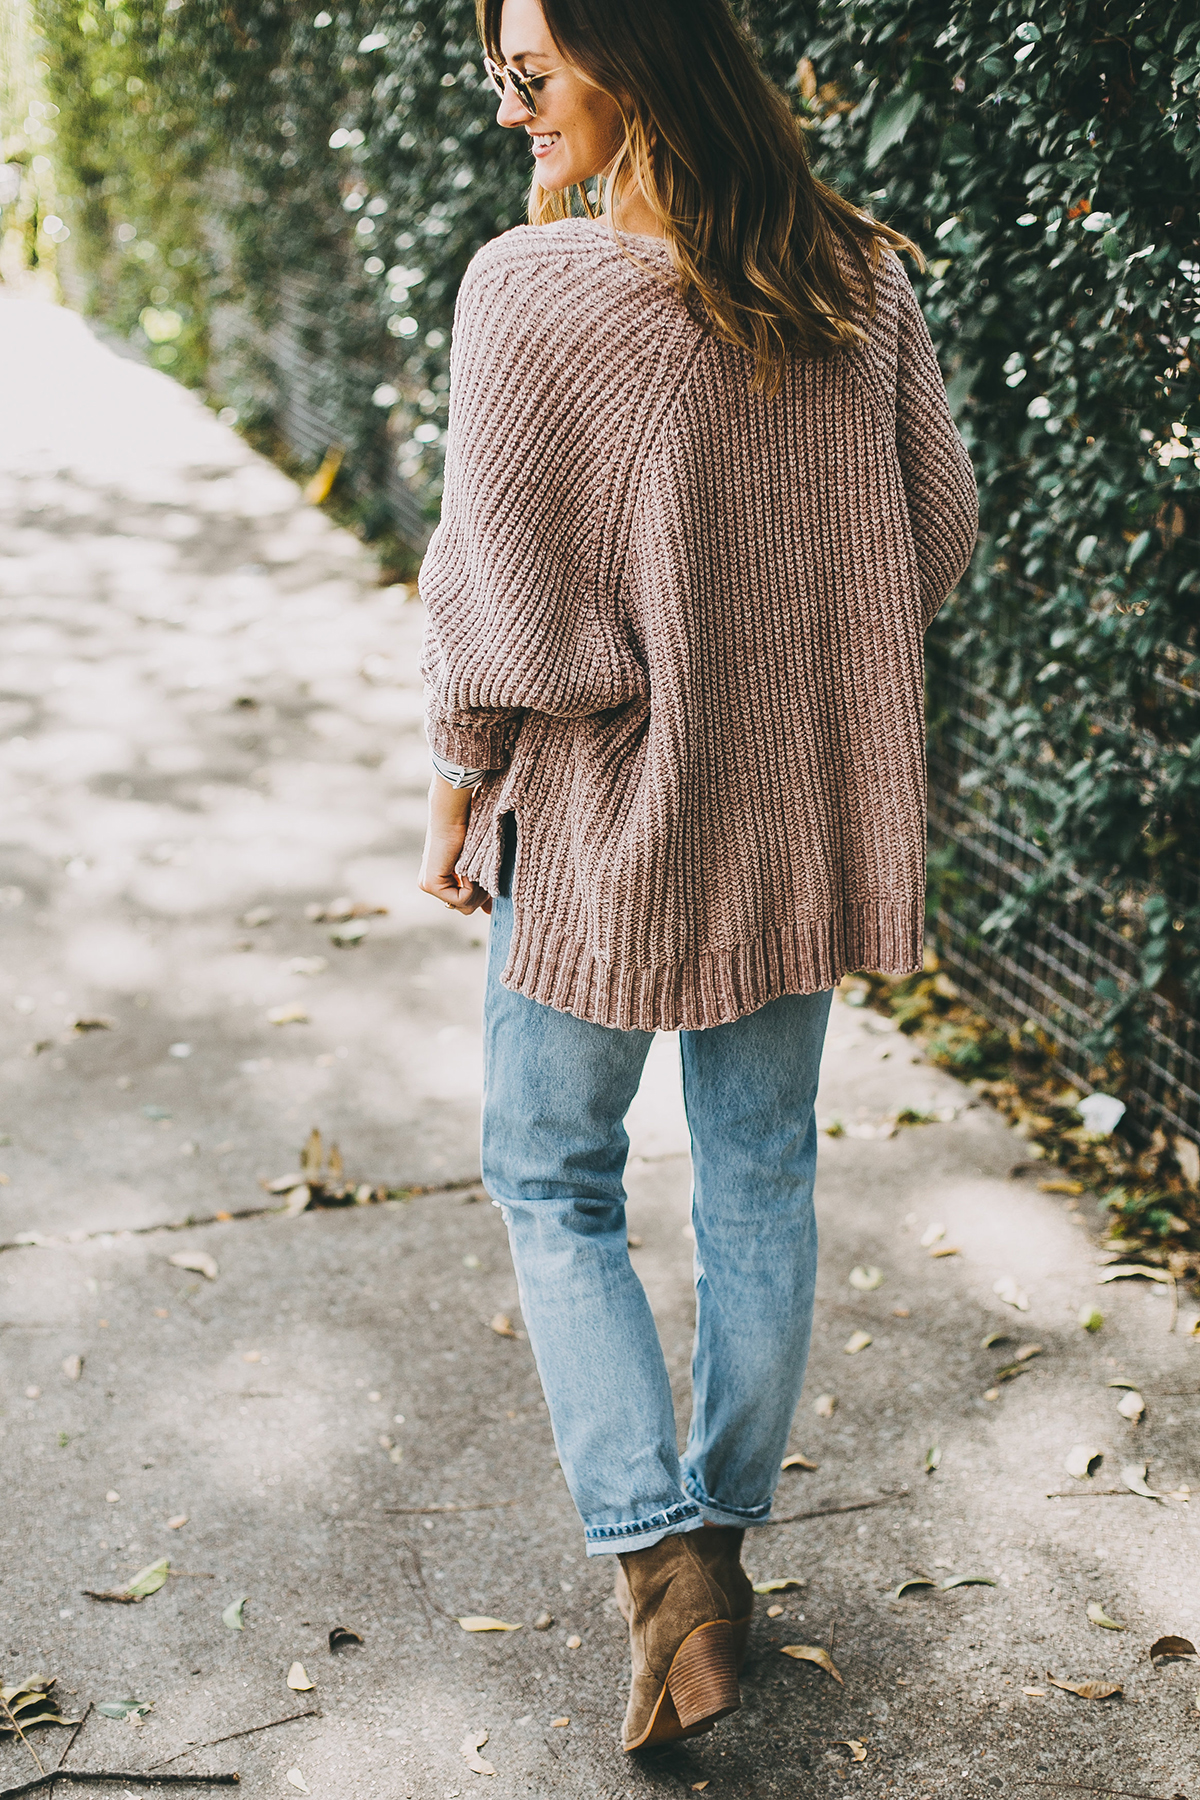 livvyland-blog-olivia-watson-barton-springs-road-chenille-blush-cardigan-stripes-fall-layers-coffee-date-outfit-idea-5